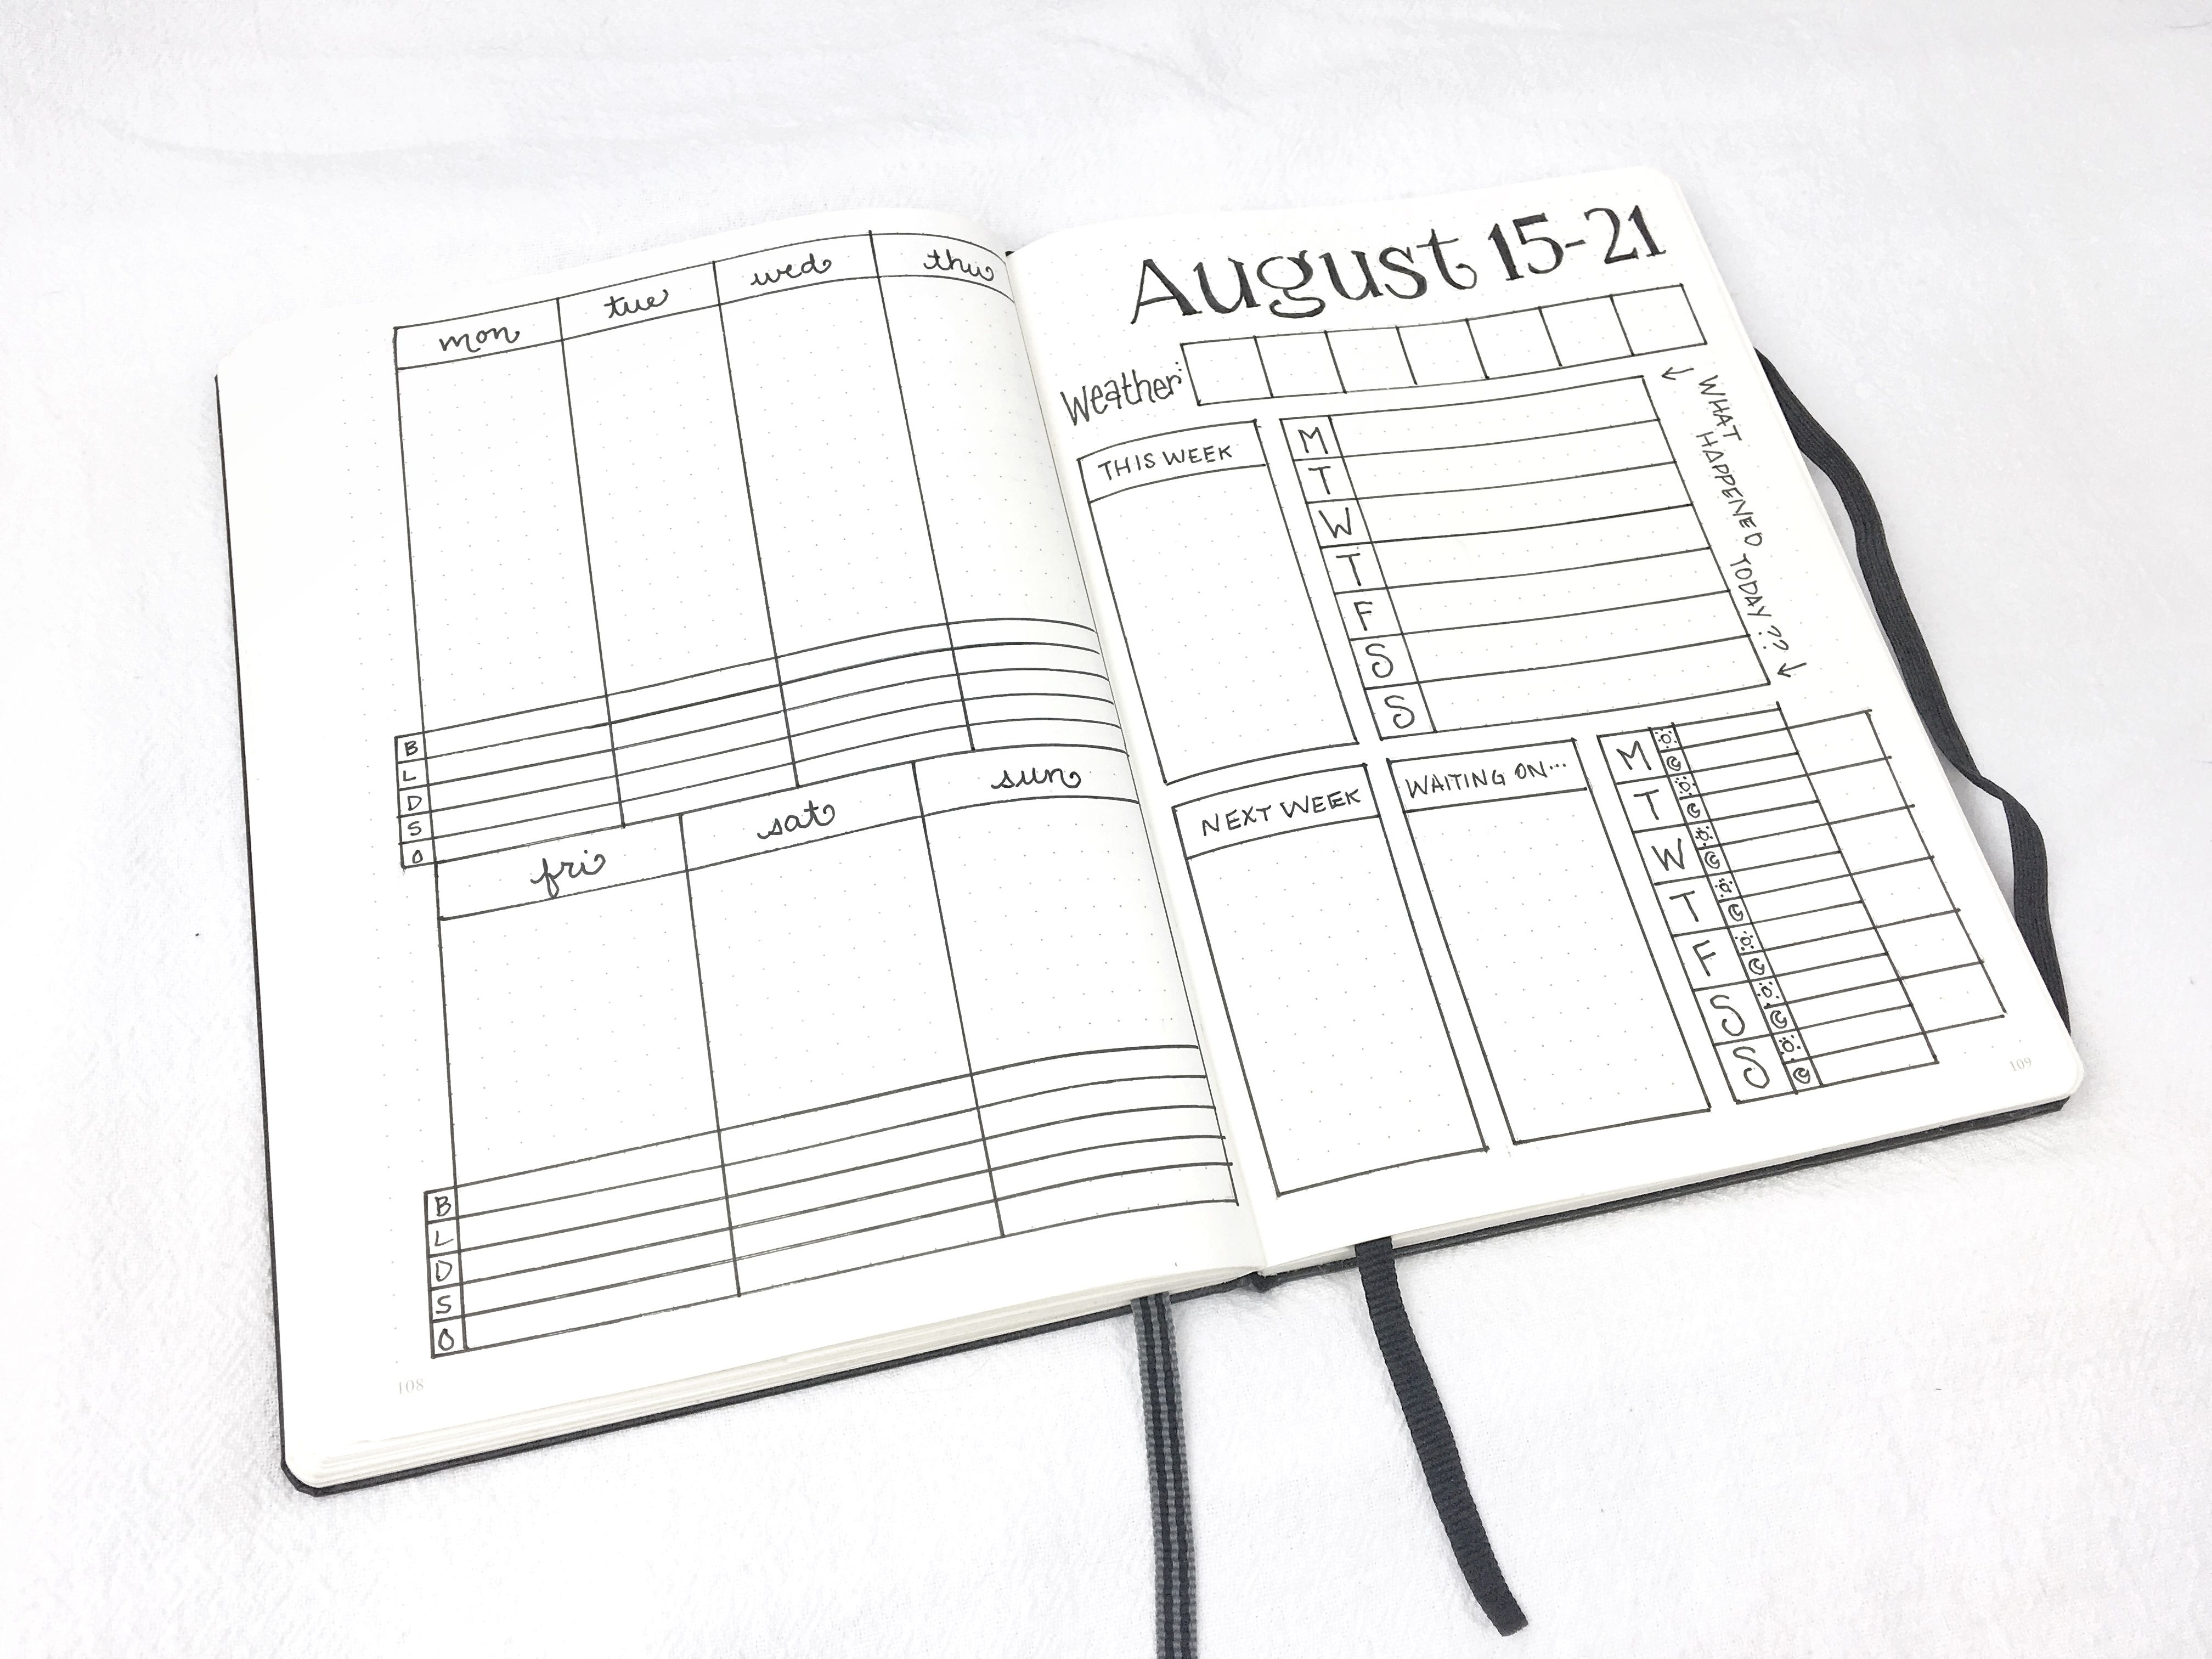 Downloadable weekly spread for August 15-21, 2016